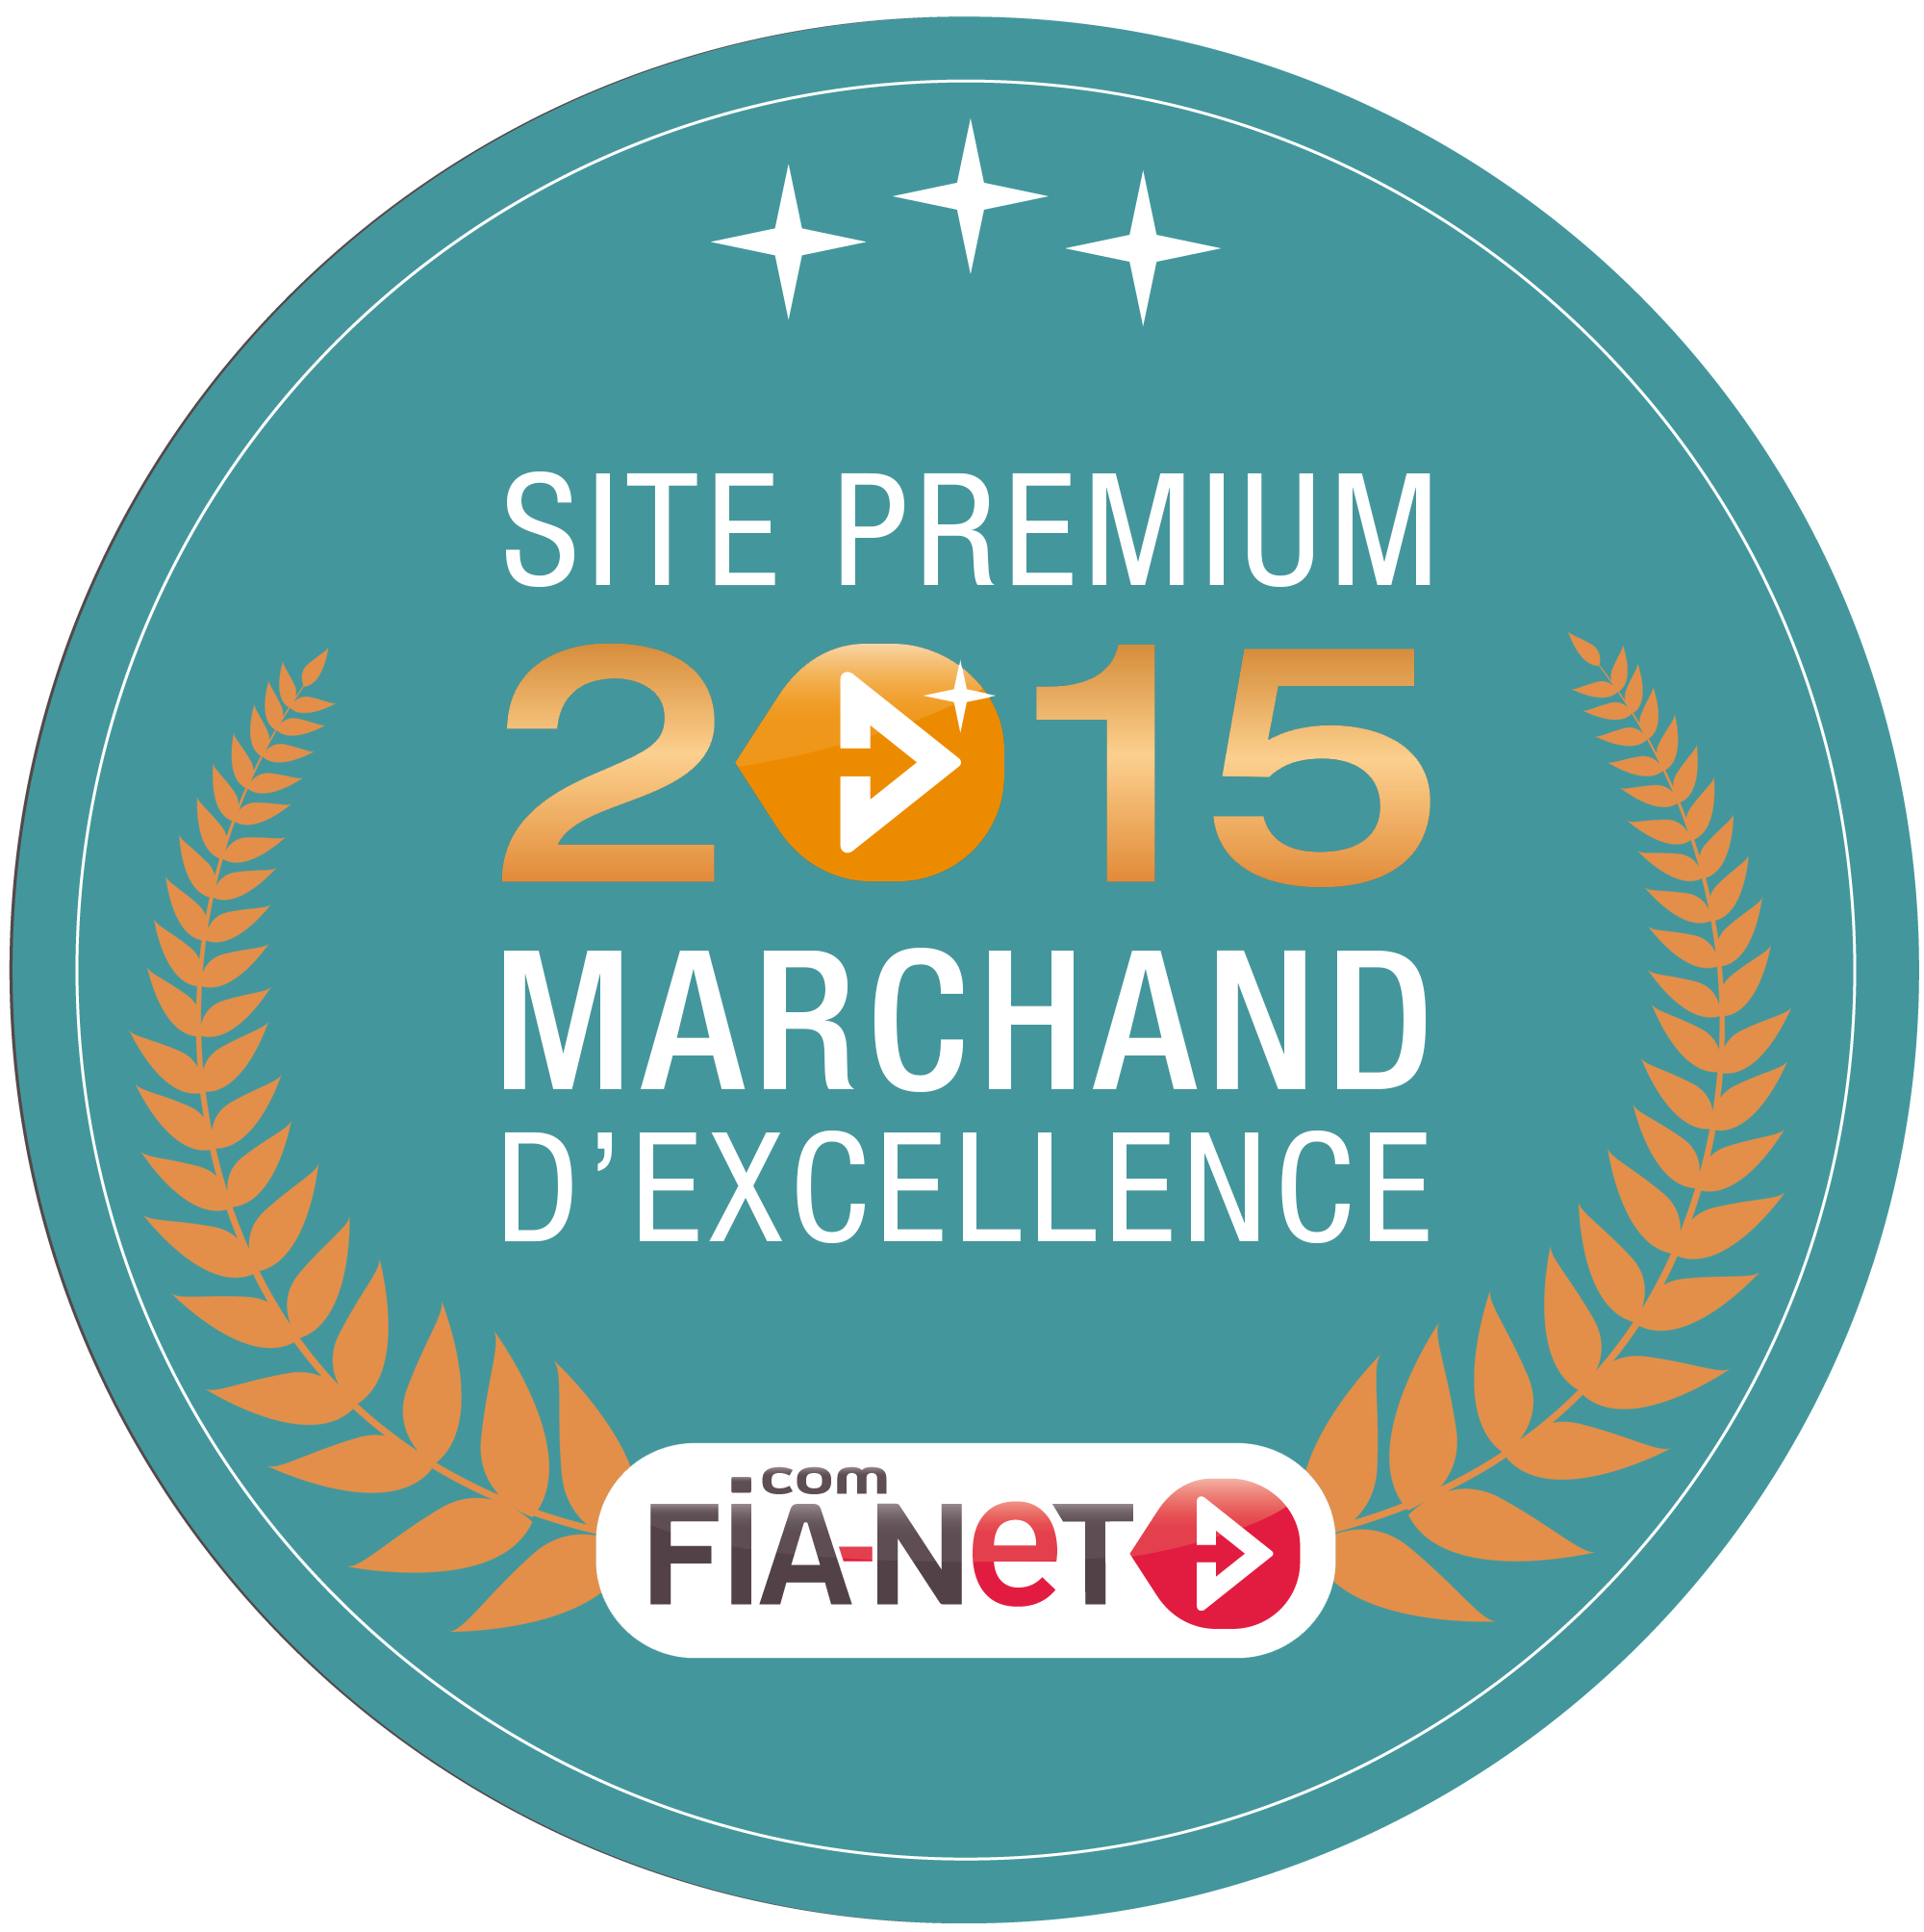 site premium 2015 Marchand d'excellence FIA-NET